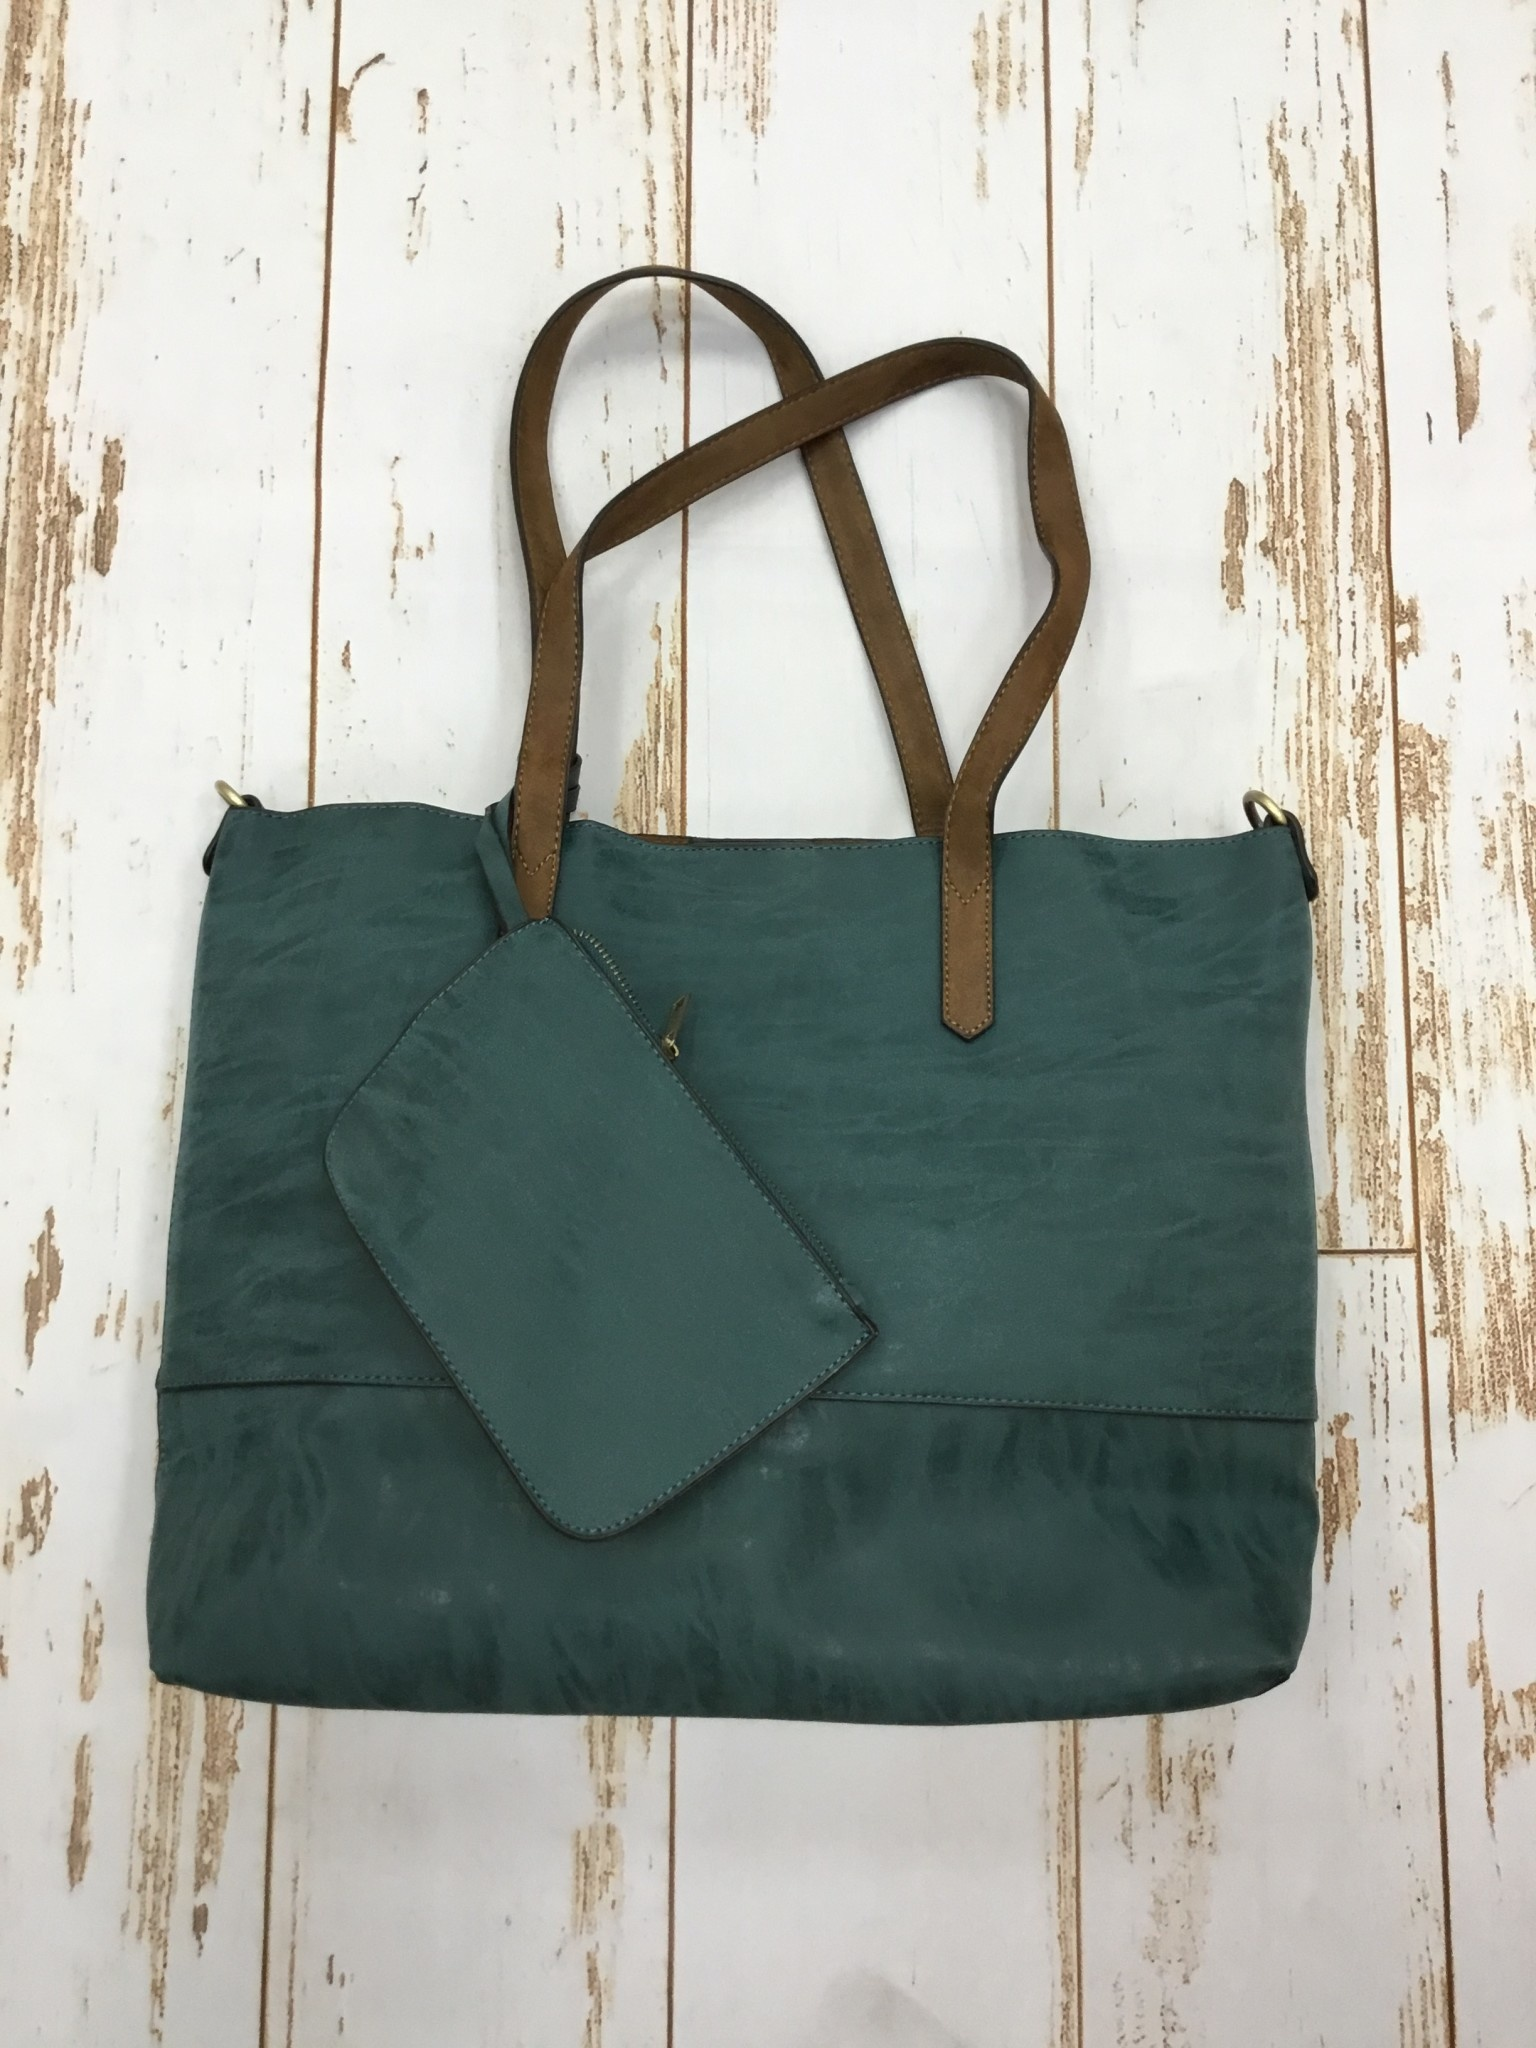 Joy Accessories 2 in 1 Tote Brushed in Teal